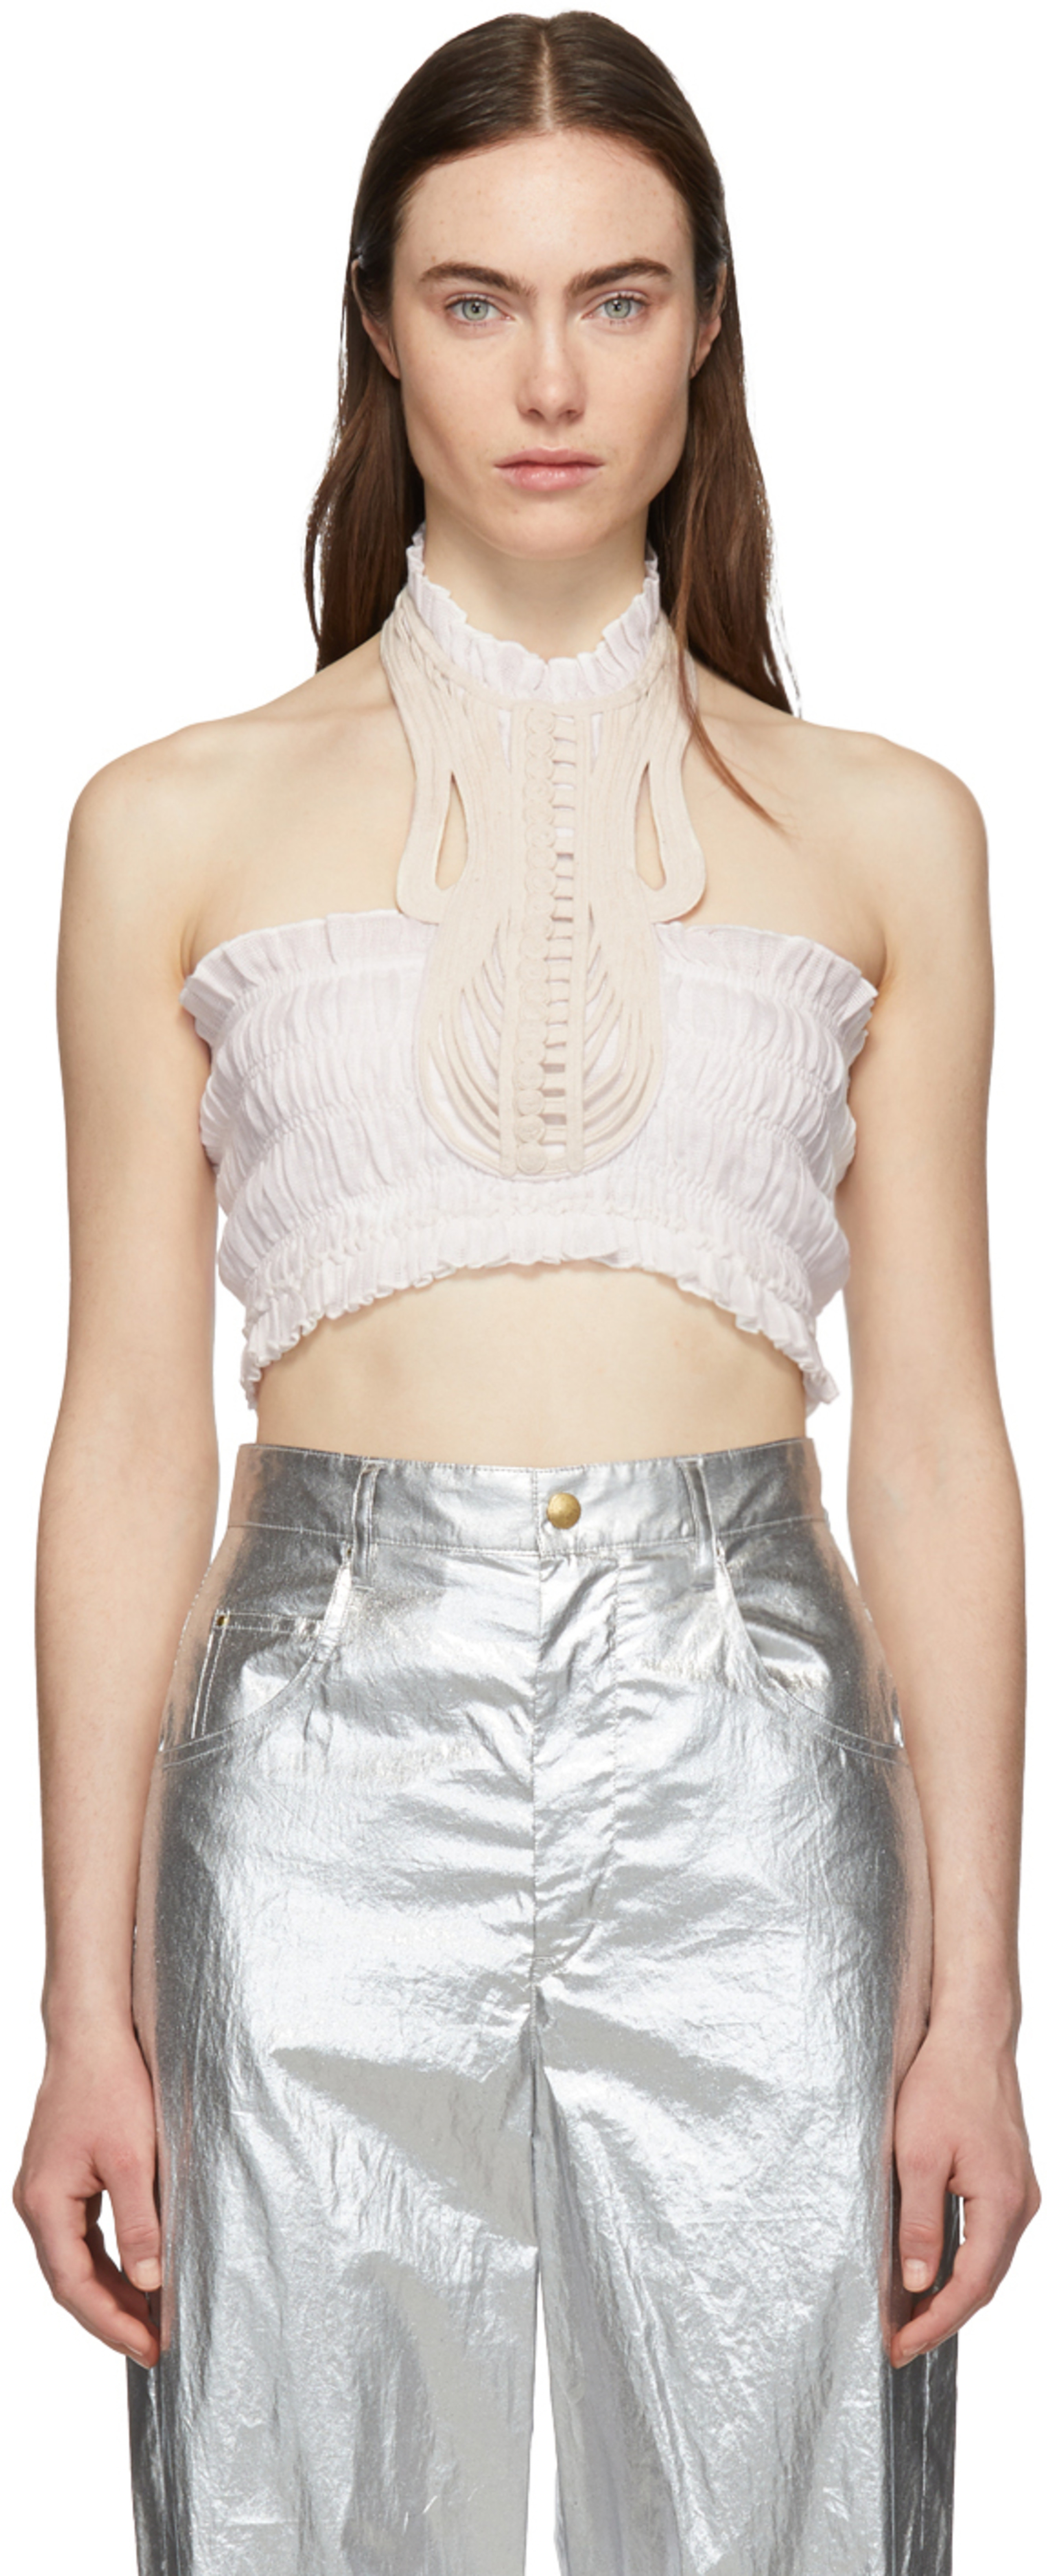 979133a7c7e0e4 Isabel Marant for Women SS19 Collection